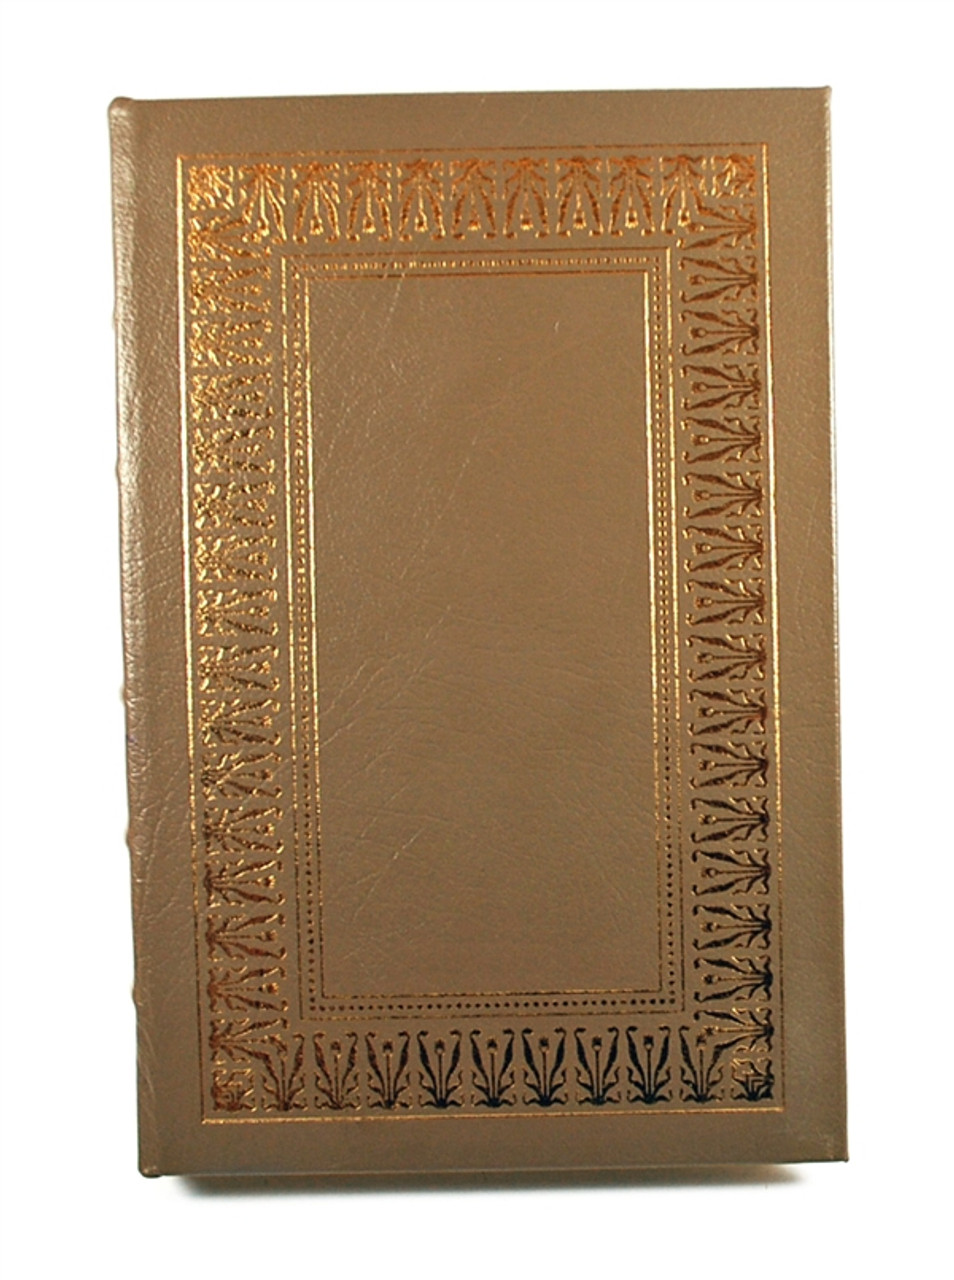 """Easton Press, William Kennedy """"Ironweed"""" Signed Limited Edition, Leather Bound Collector's Edition w/COA [Very Fine]"""